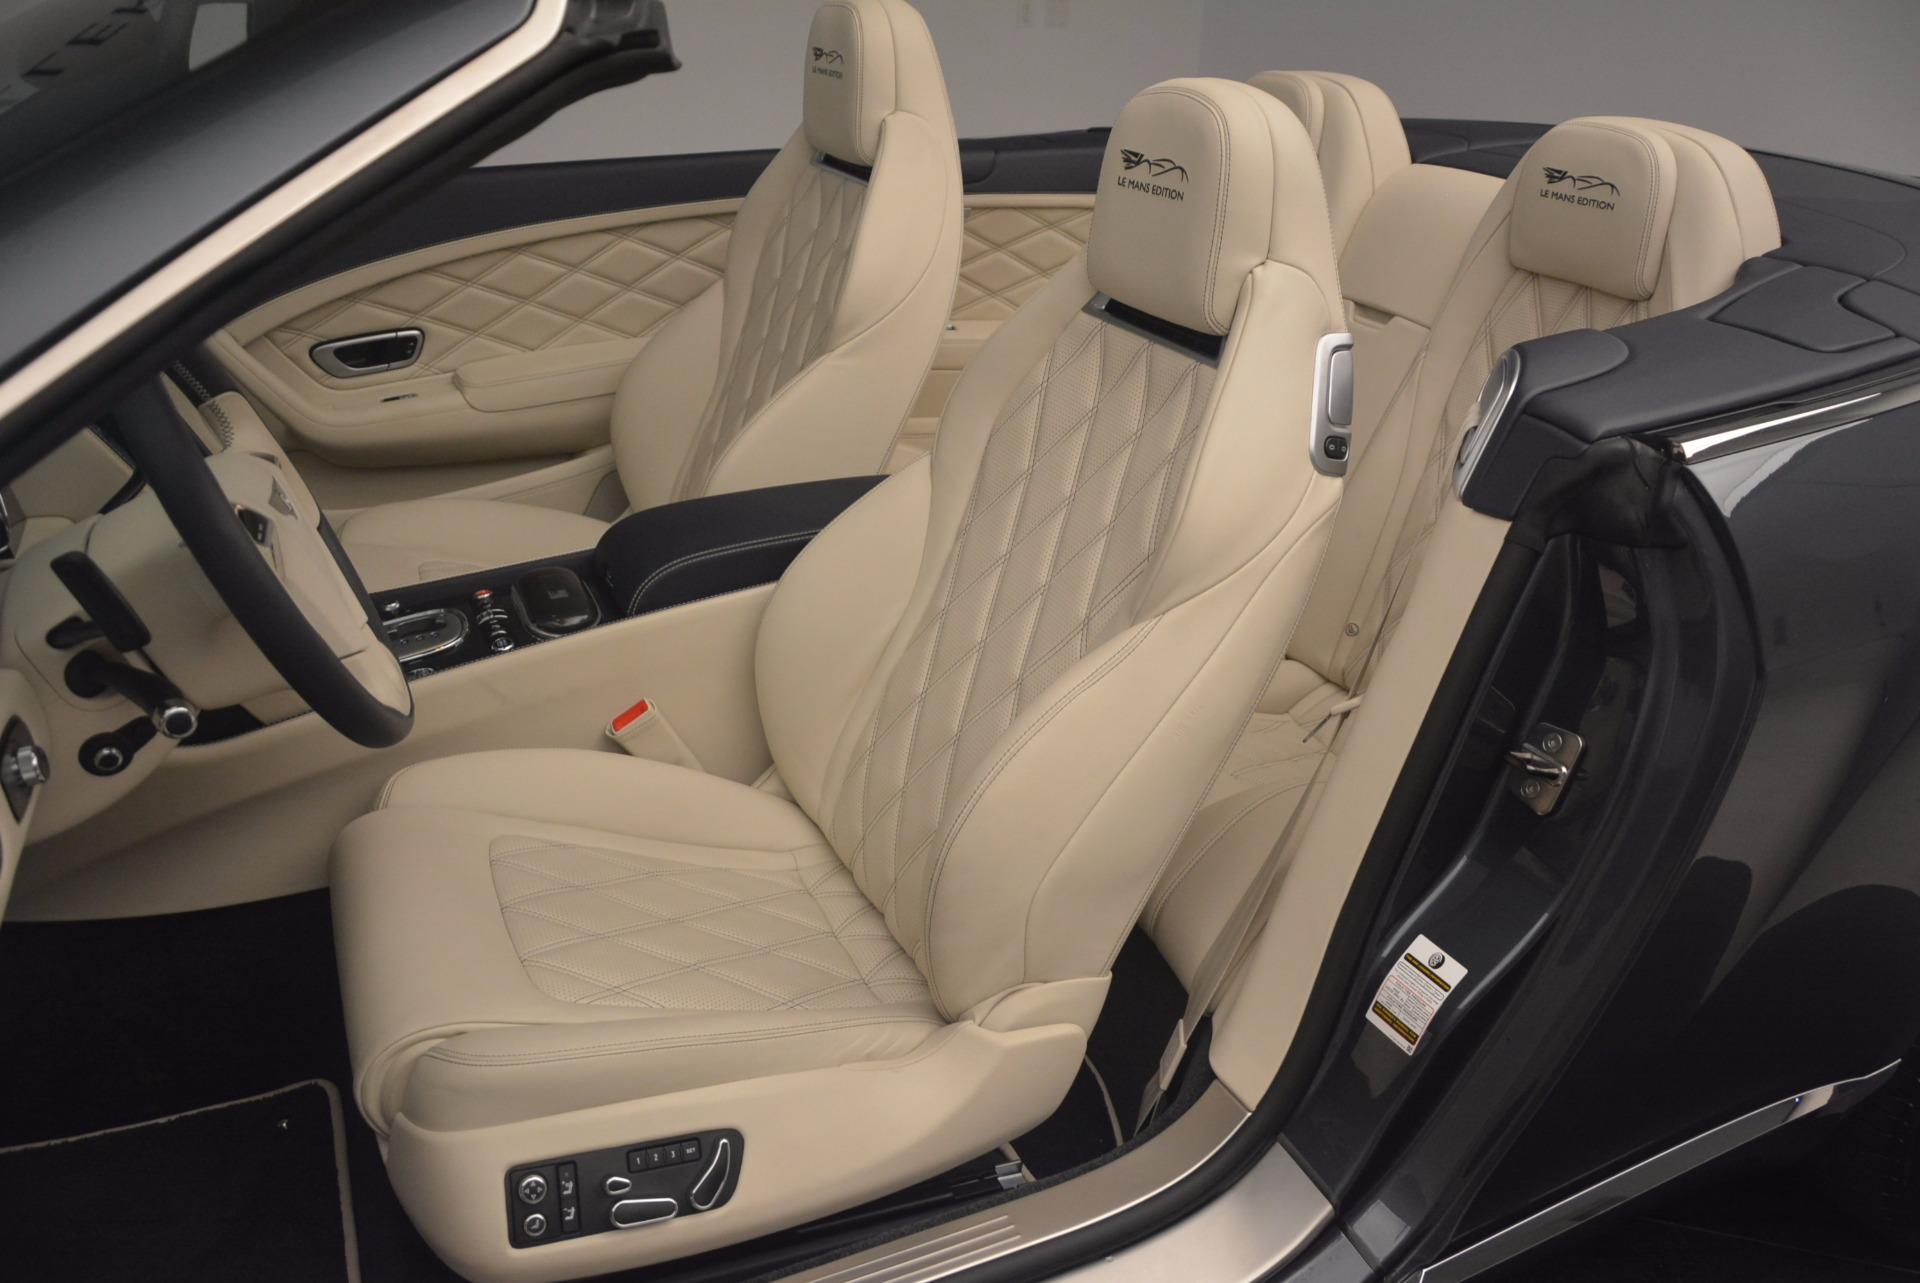 Used 2013 Bentley Continental GT V8 Le Mans Edition, 1 of 48 For Sale In Westport, CT 1288_p35